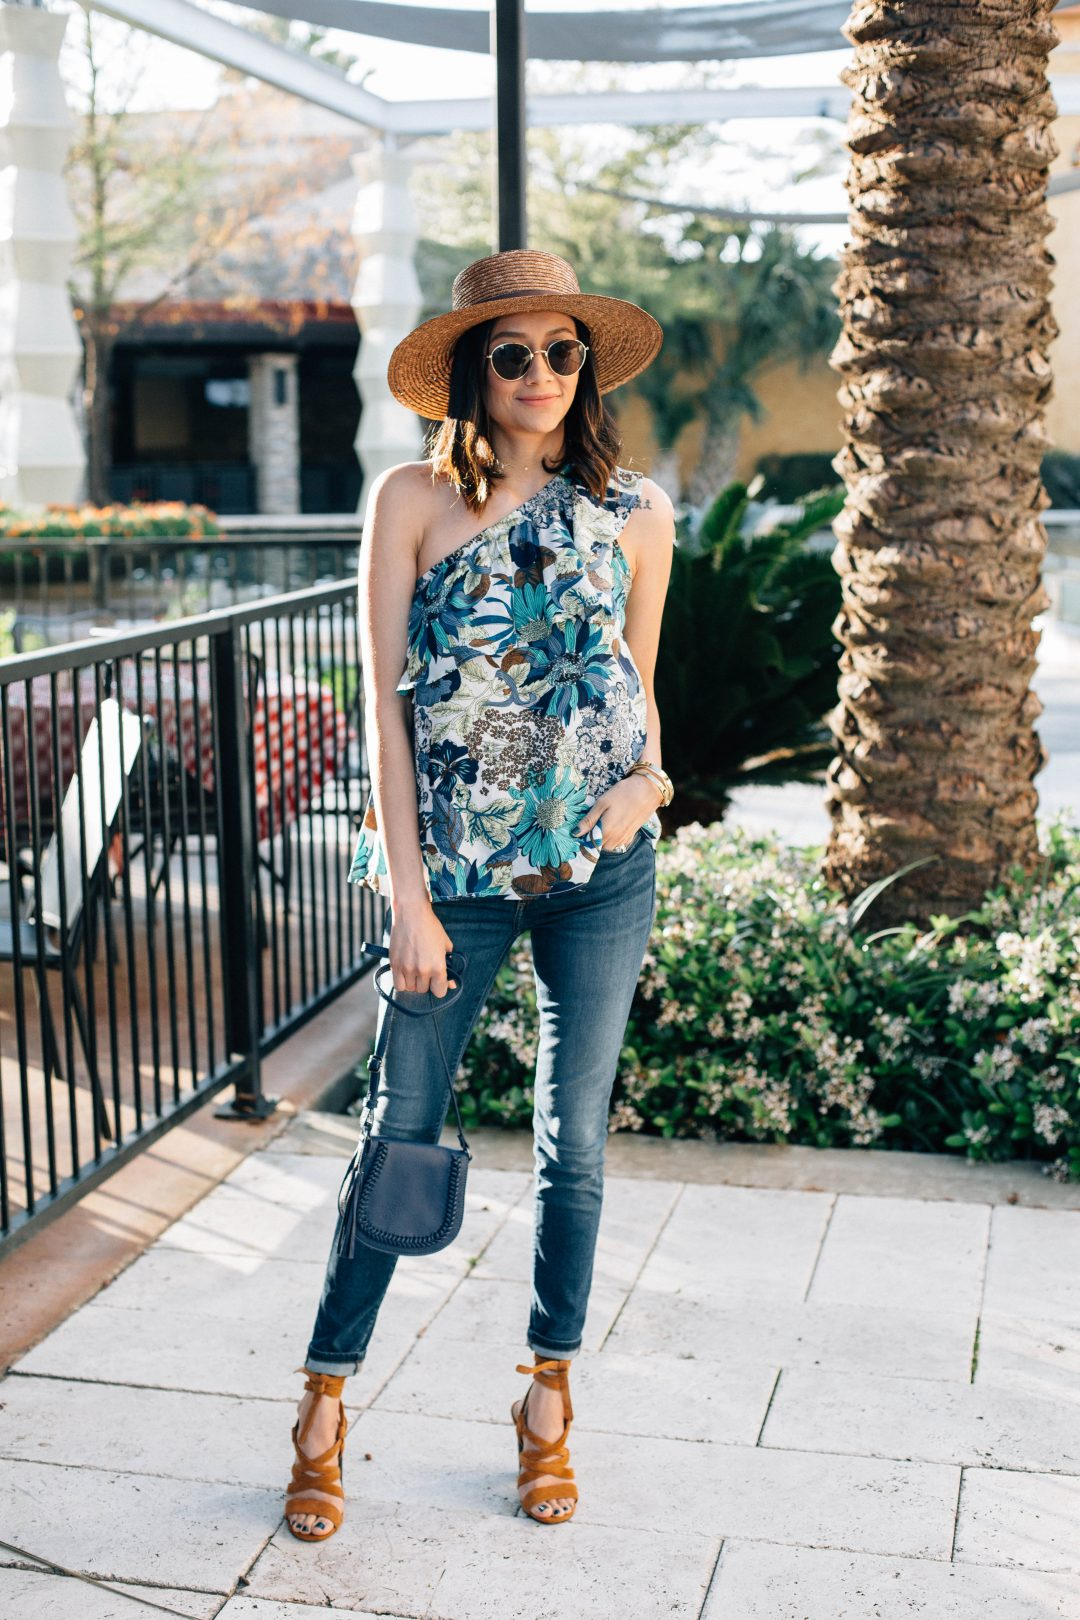 The perfect one shoulder top for spring